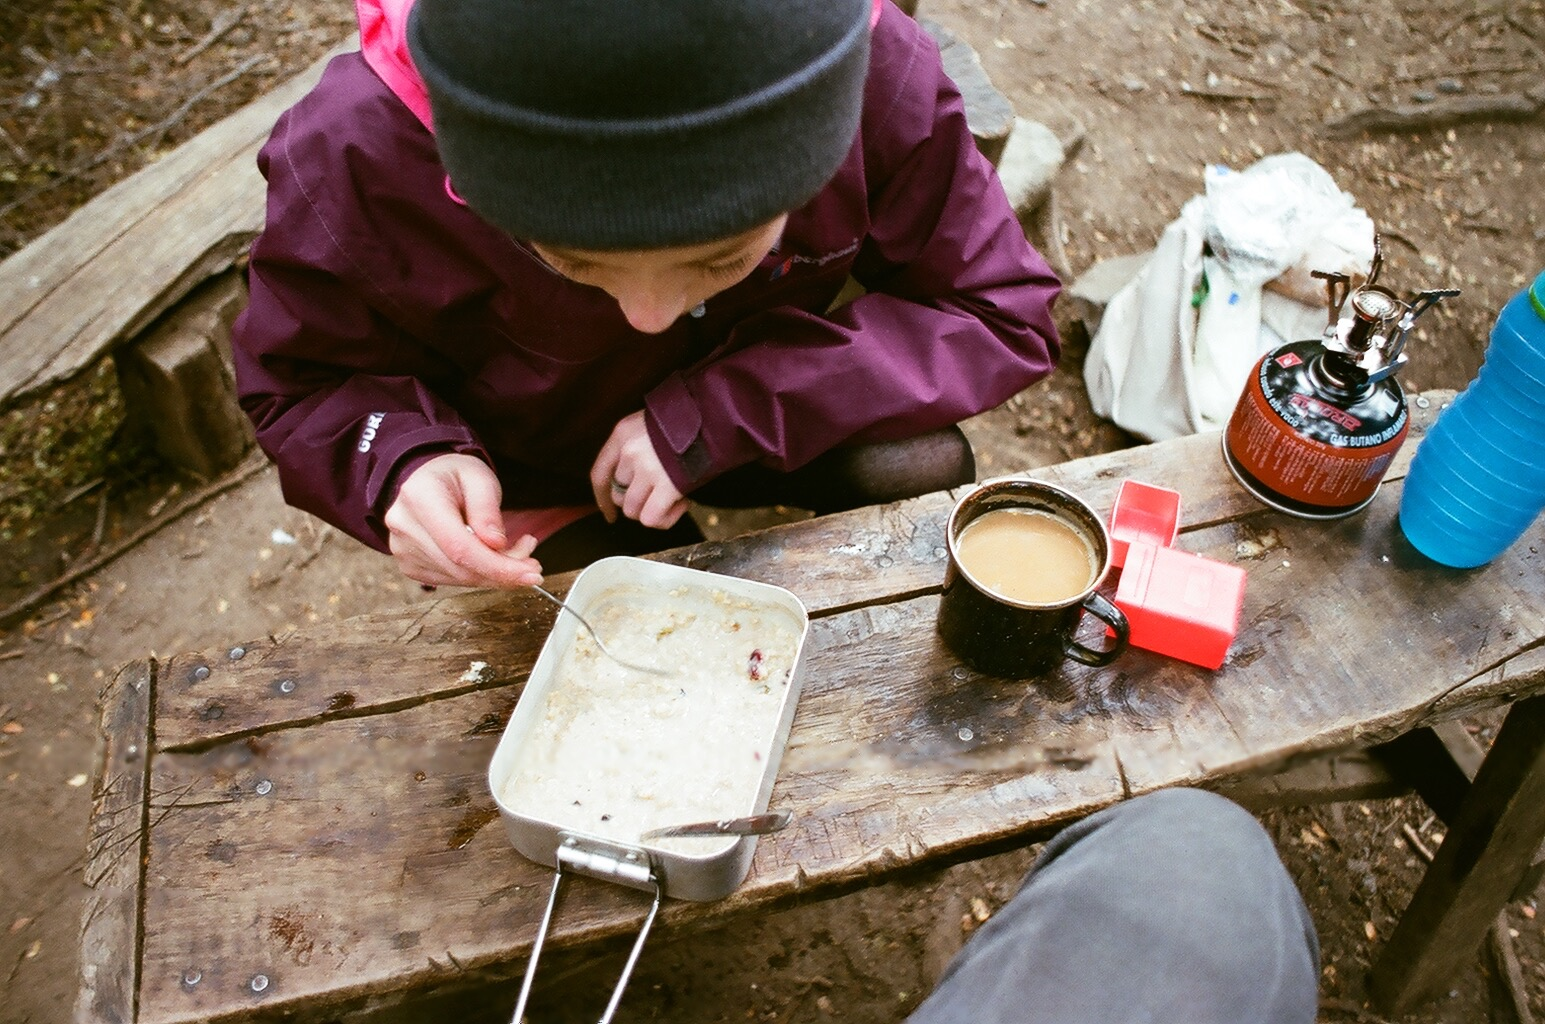 The rewards of cooking breakfast on the camp stove, porridge and tea!